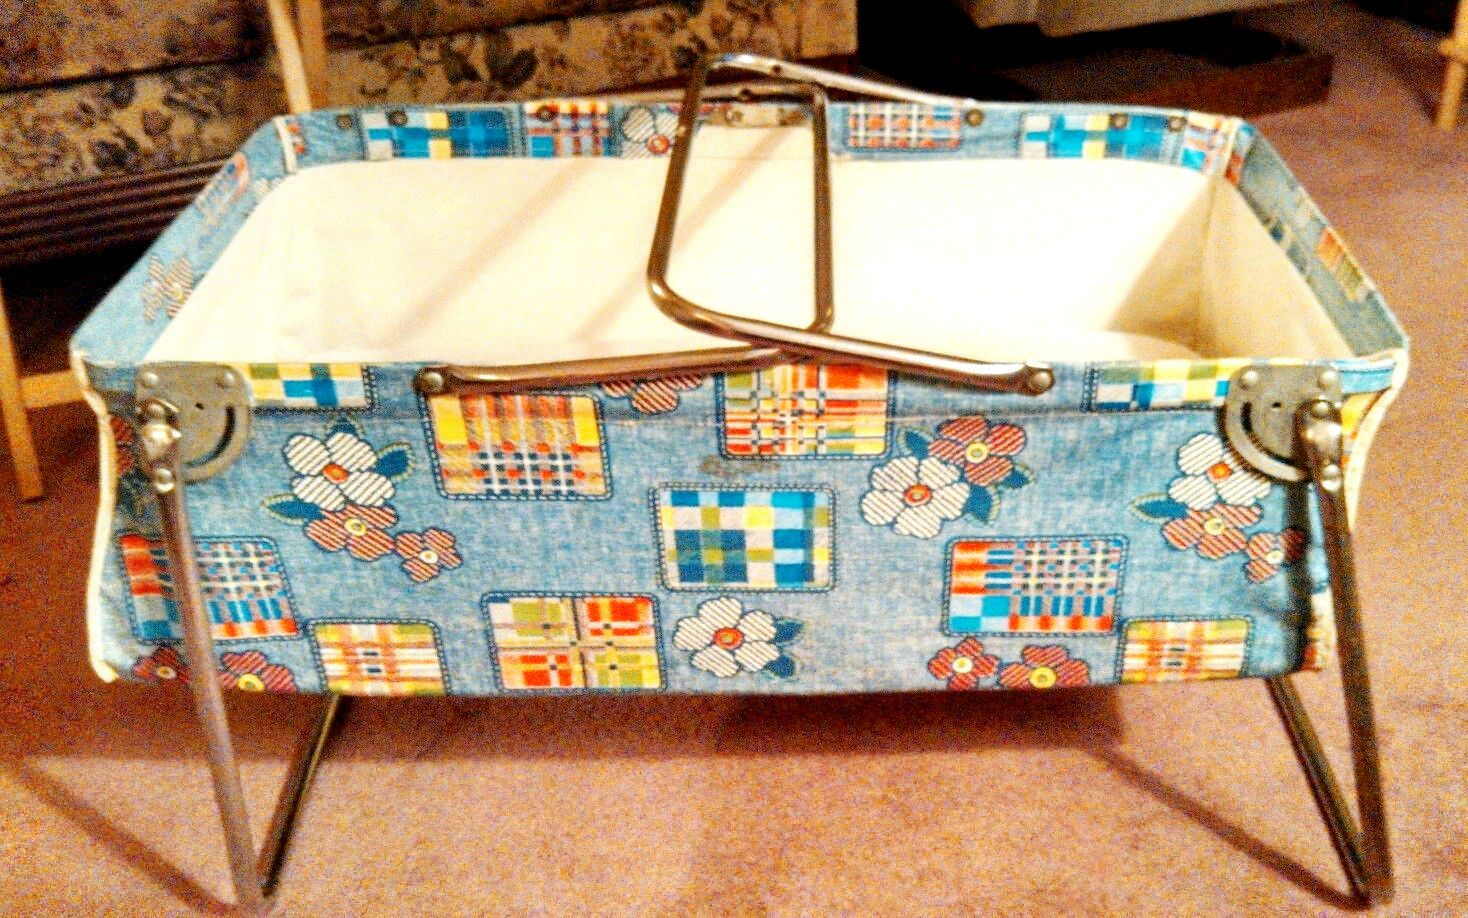 Vintage 1960s Portable Infant Car Bed With Mattress